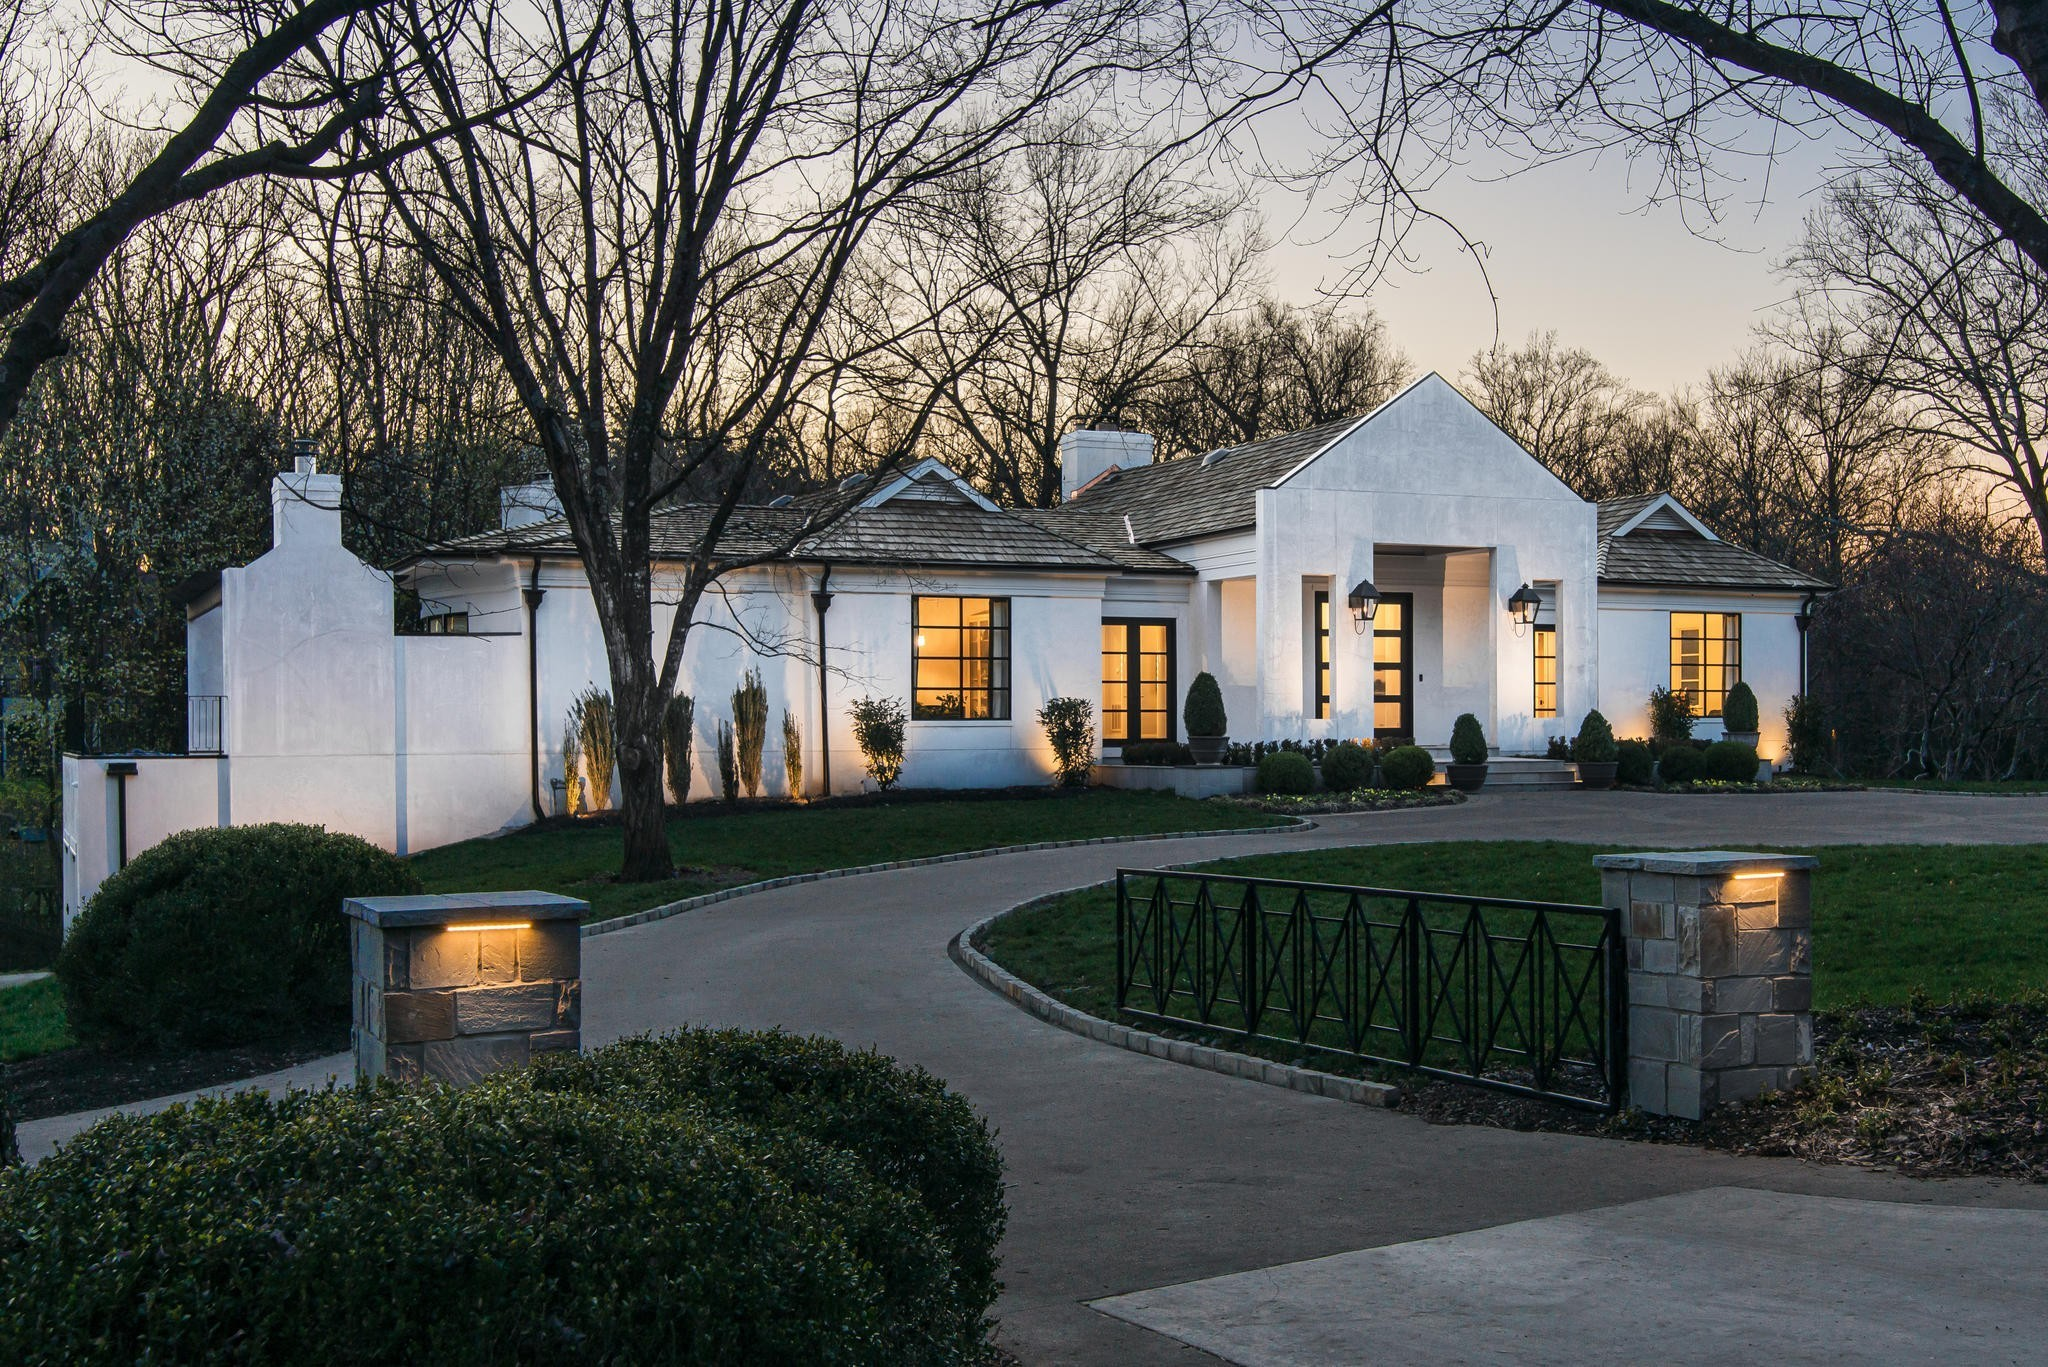 Spectacular Belle Meade Estate nestled on 1.23 Aces. This newly renovated five bedroom home is one of Nashville's most luxurious homes in Nashville's most exclusive neighborhoods. New Venetian Plaster Exterior with Cedar Shake Roof. New European Kitchen Cabinetry with new Miele Appliances. All new Pella windows and doors. Pool approved and construction process underway. Wine Cellar and Safe Room. Four car garage with tons of storage space. Fully encapsulated crawl space.